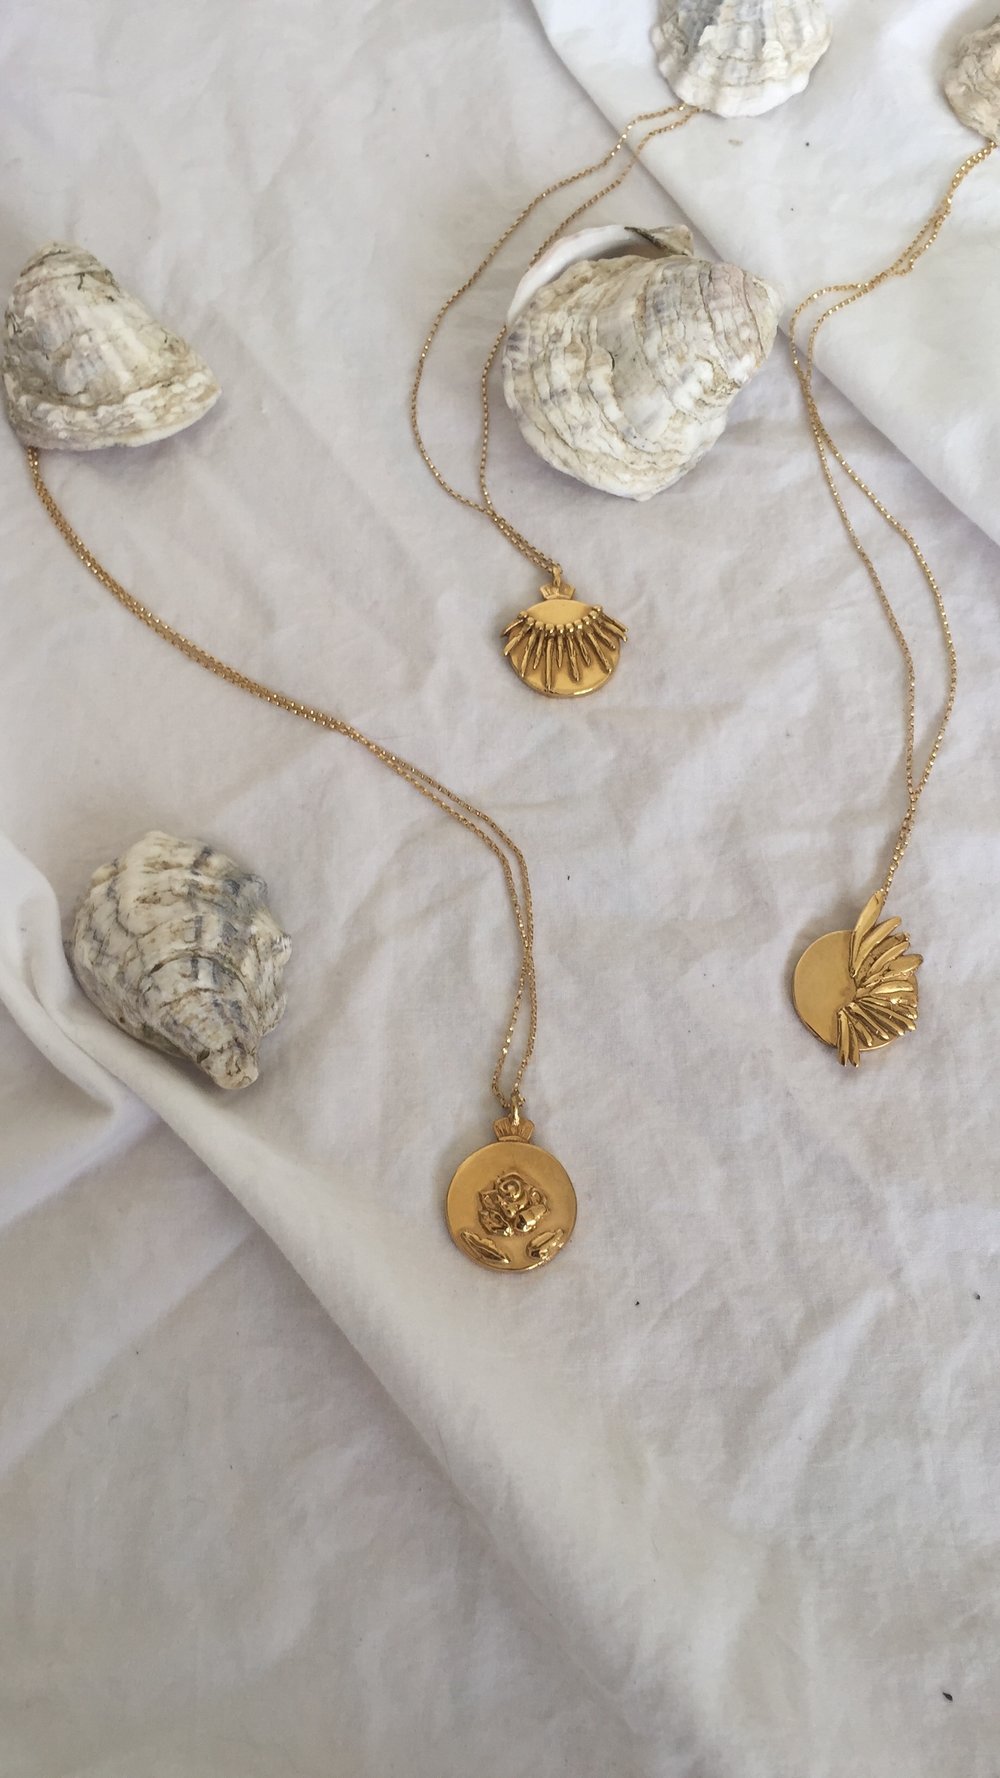 SOLE, CORVO & ROSETTE NECKLACES